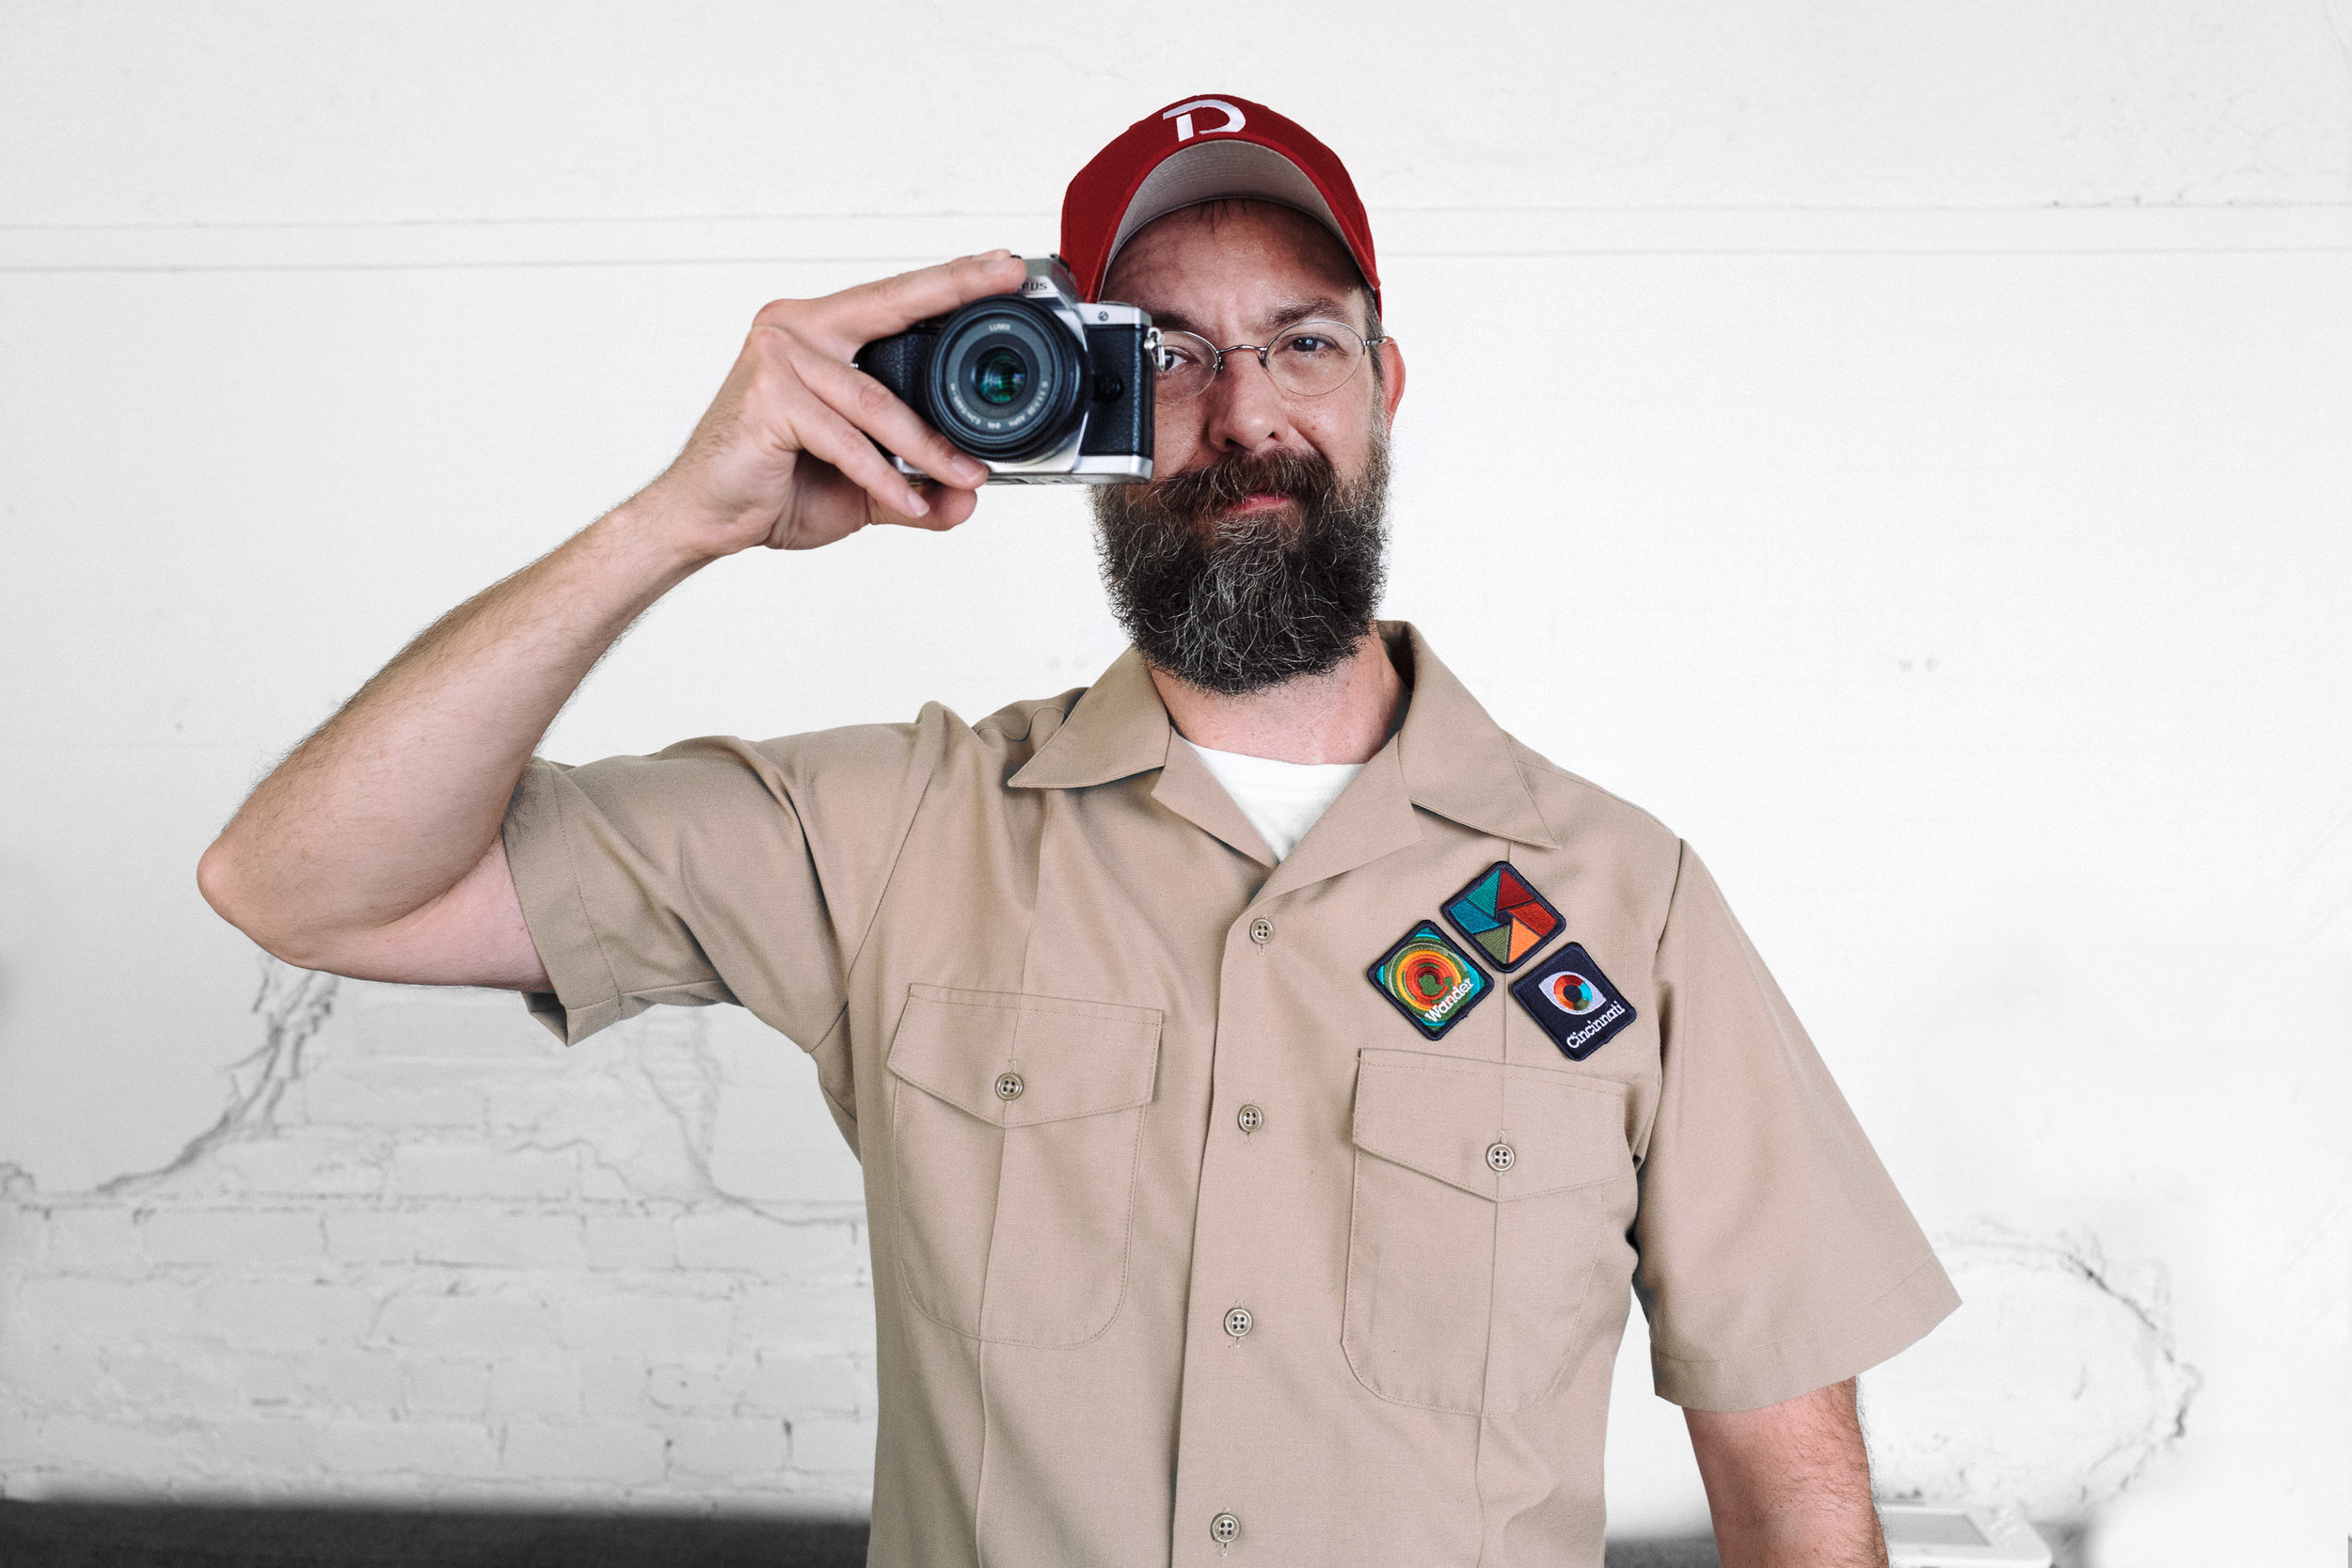 Chris Glass wearing the badges of PhotoScouting.  Photo by Joe Mesa